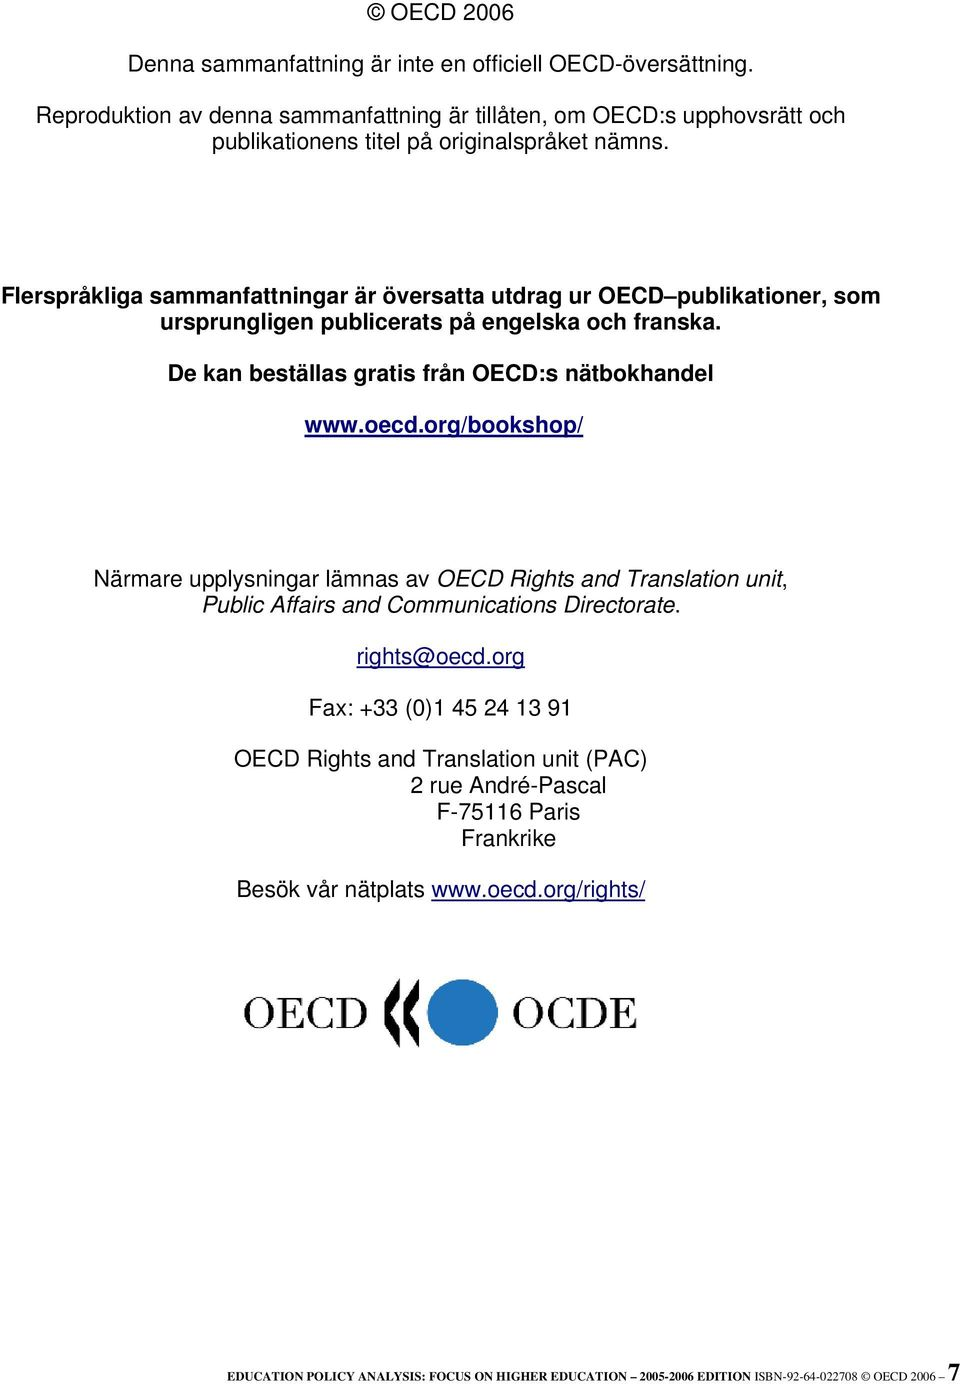 org/bookshop/ Närmare upplysningar lämnas av OECD Rights and Translation unit, Public Affairs and Communications Directorate. rights@oecd.